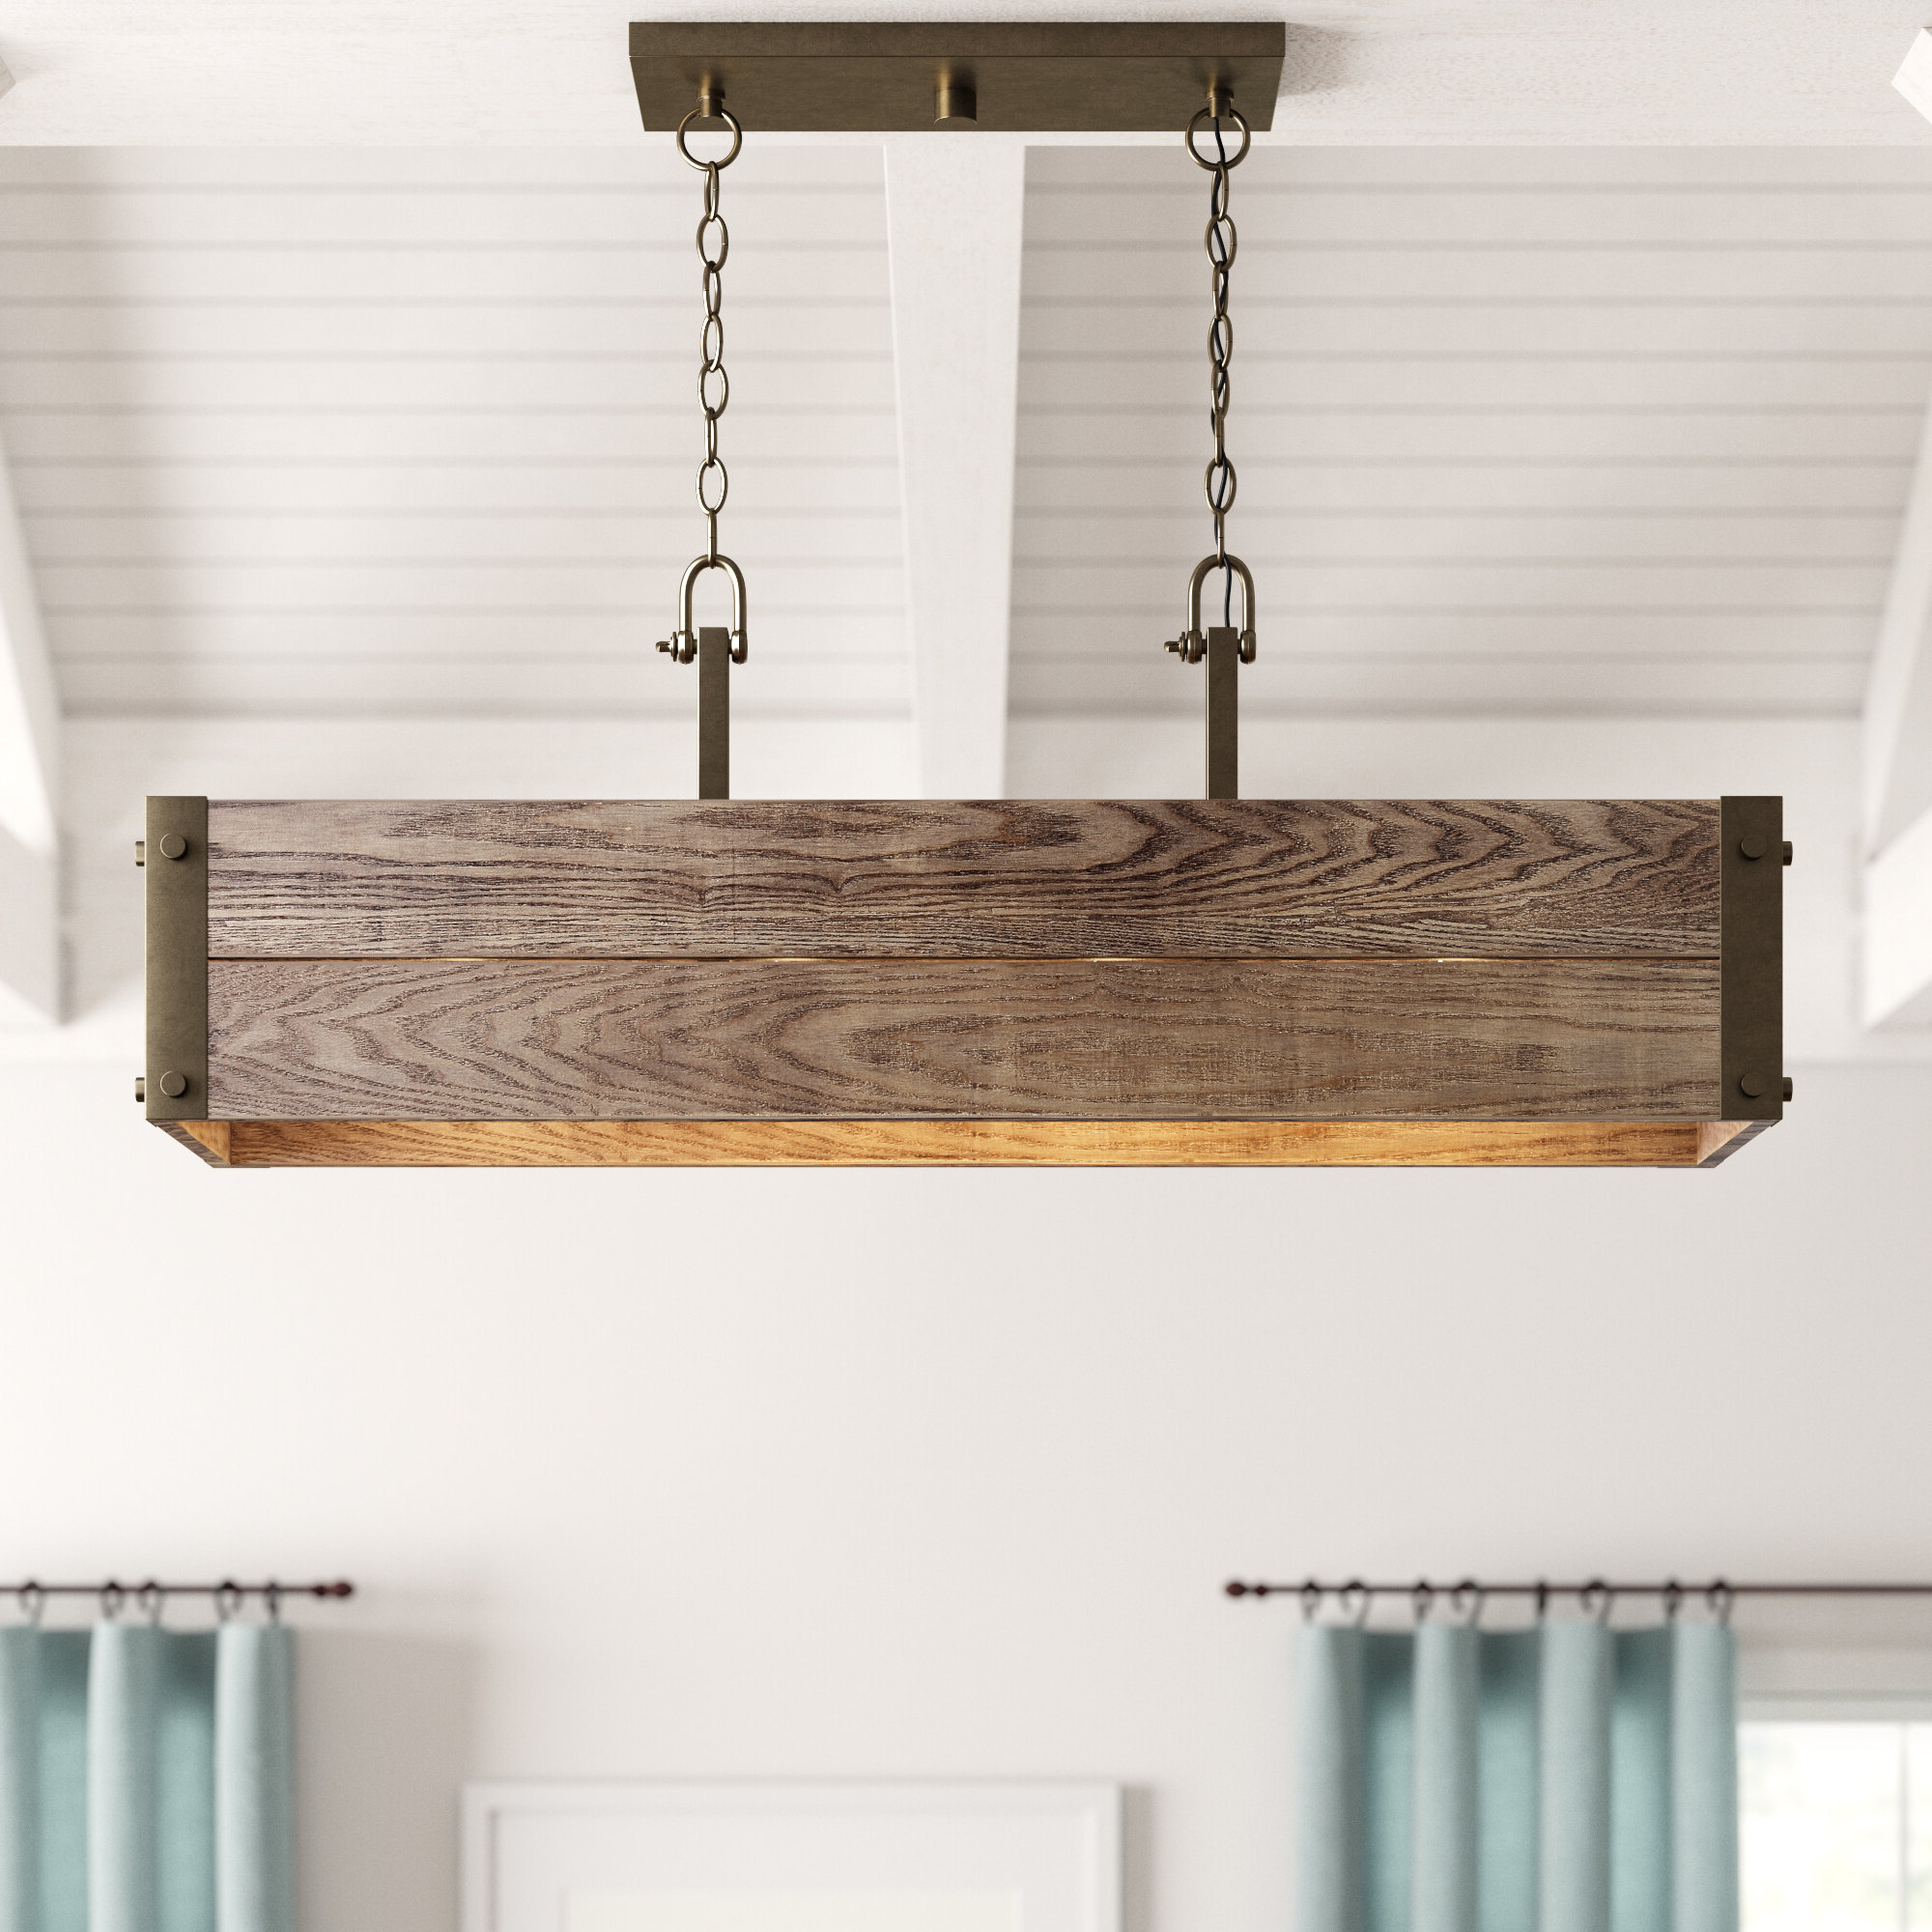 Most Recent Ariel 2 Light Kitchen Island Dome Pendants In Cathey 4 Light Kitchen Island Linear Pendant (View 22 of 25)